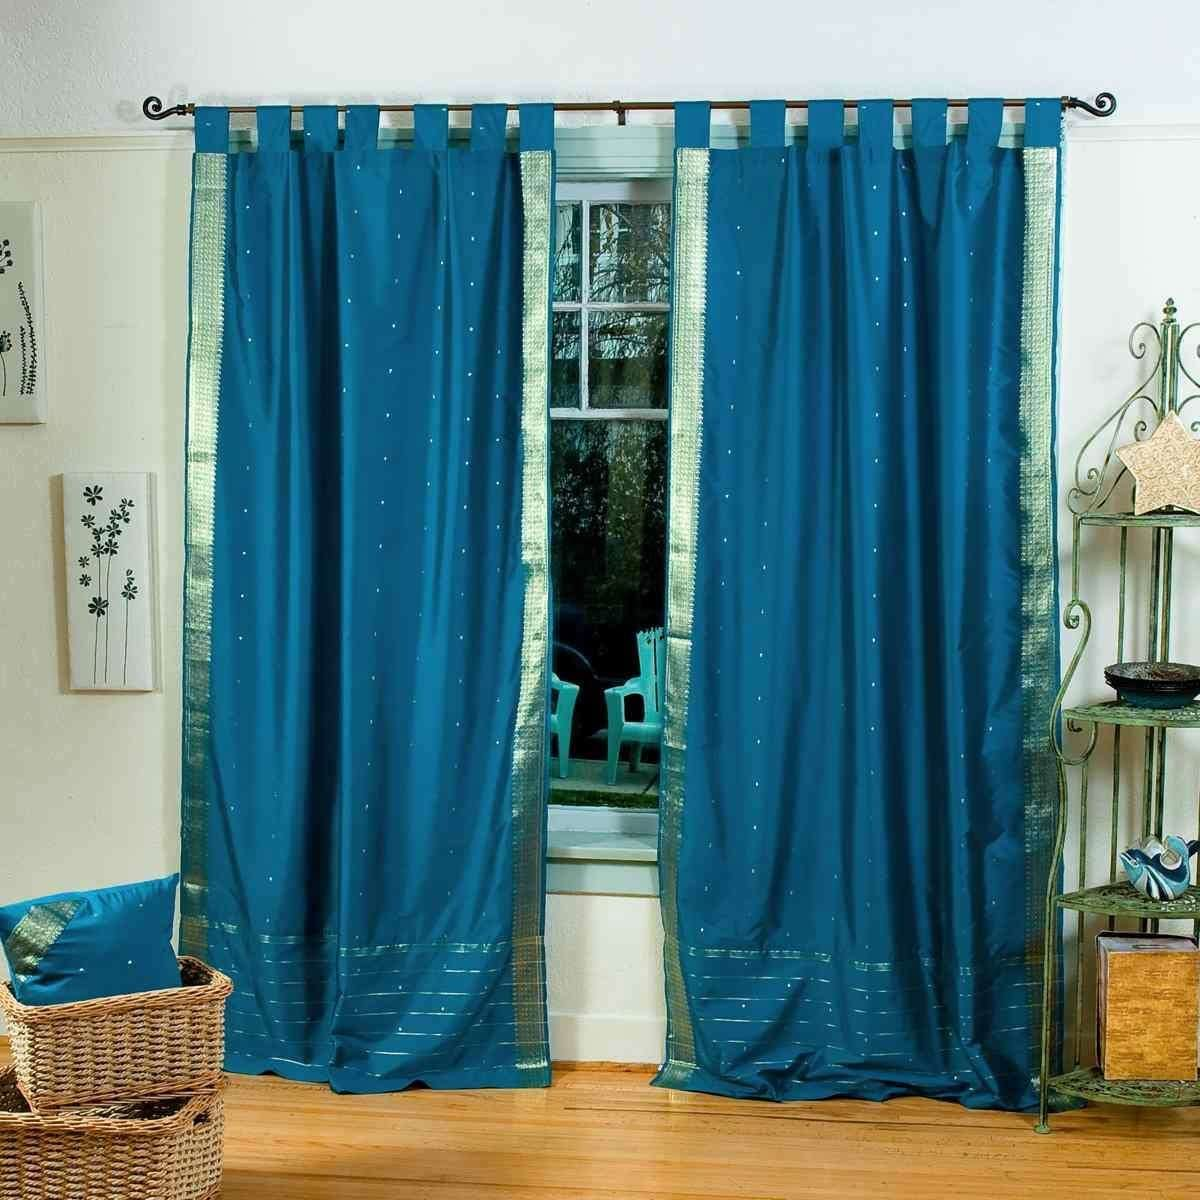 Indian Selections Lined-Turquoise Tab Top Sheer Sari Curtain Drape – 80W x 120L – Piece